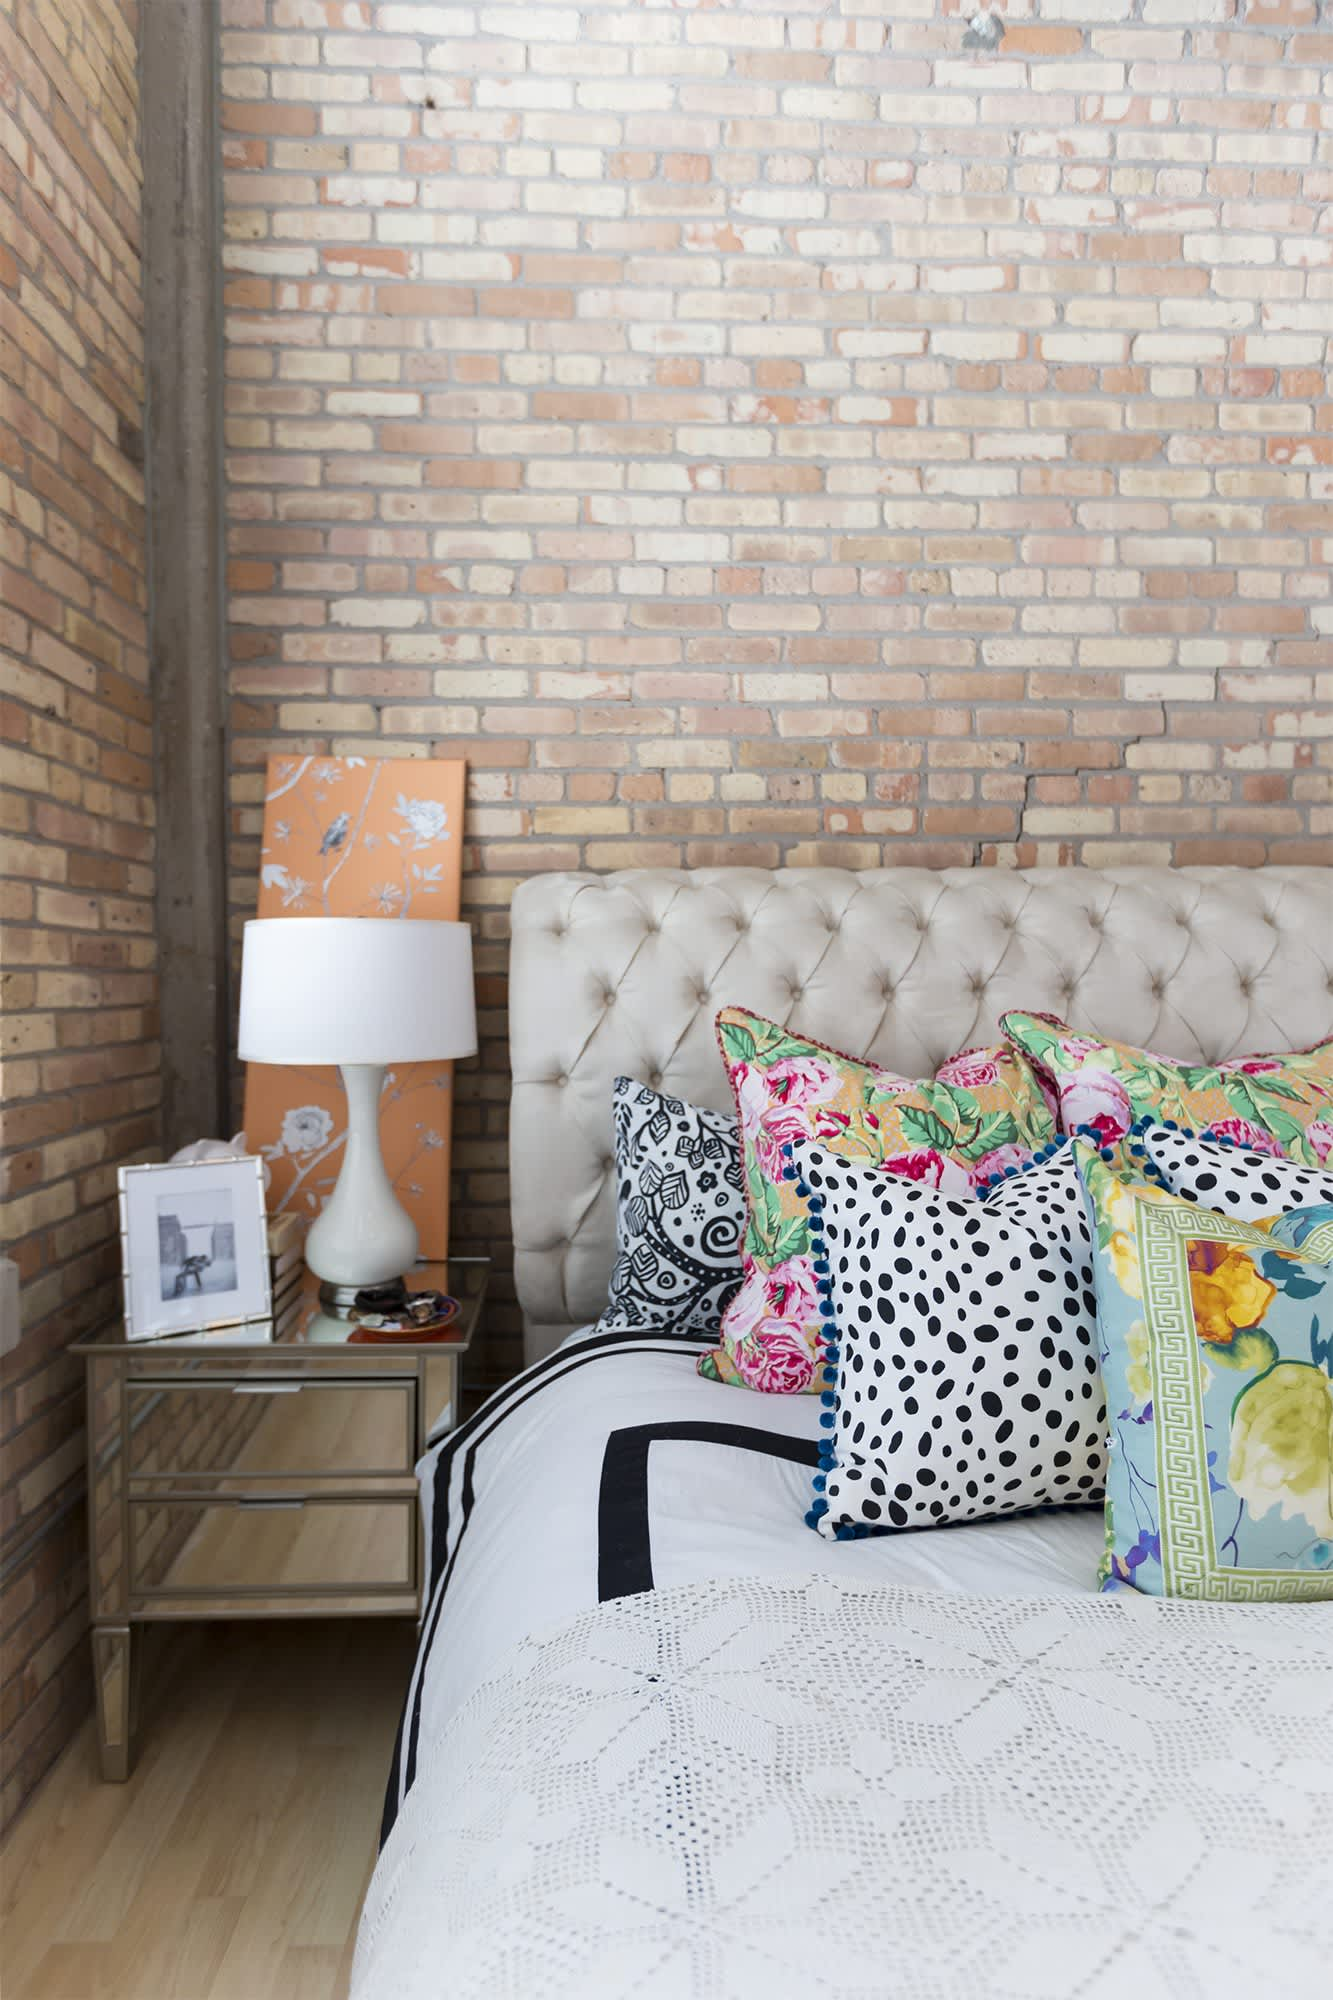 House Tour: A Lovely & Eclectic Milwaukee Loft | Apartment ...